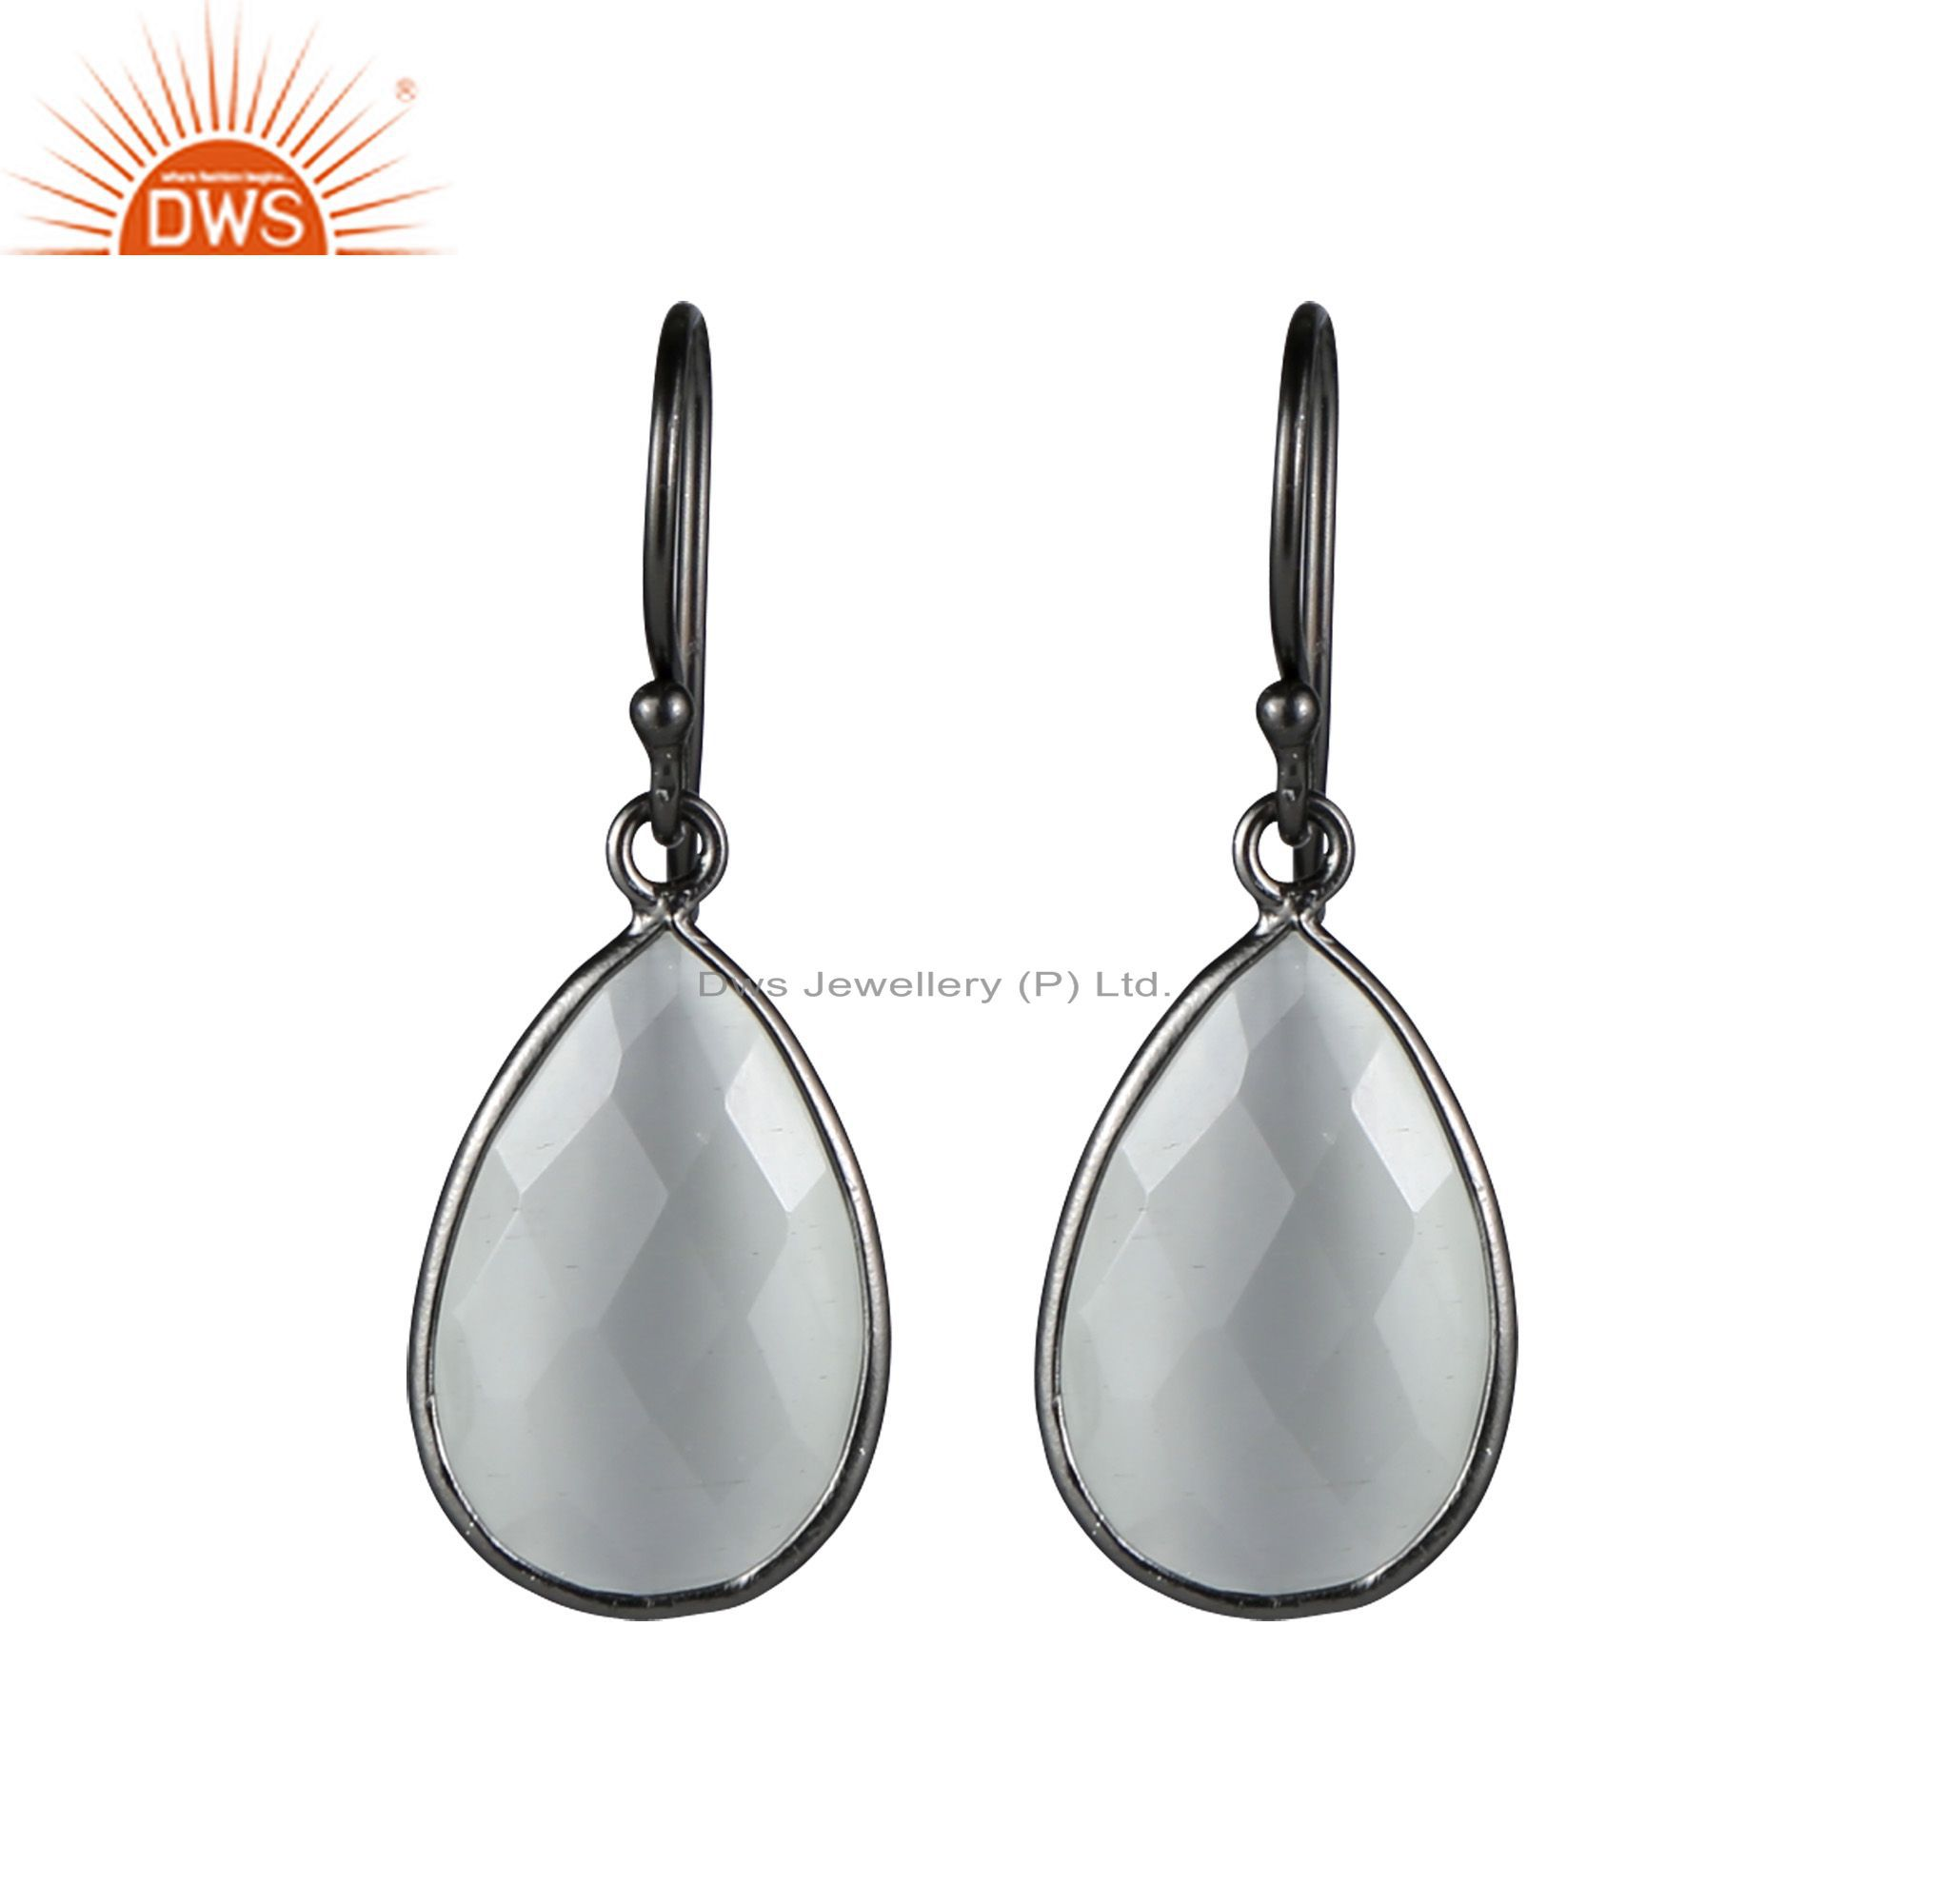 Oxidized Sterling Silver Faceted White Moonstone Bezel Set Teardrop Earrings